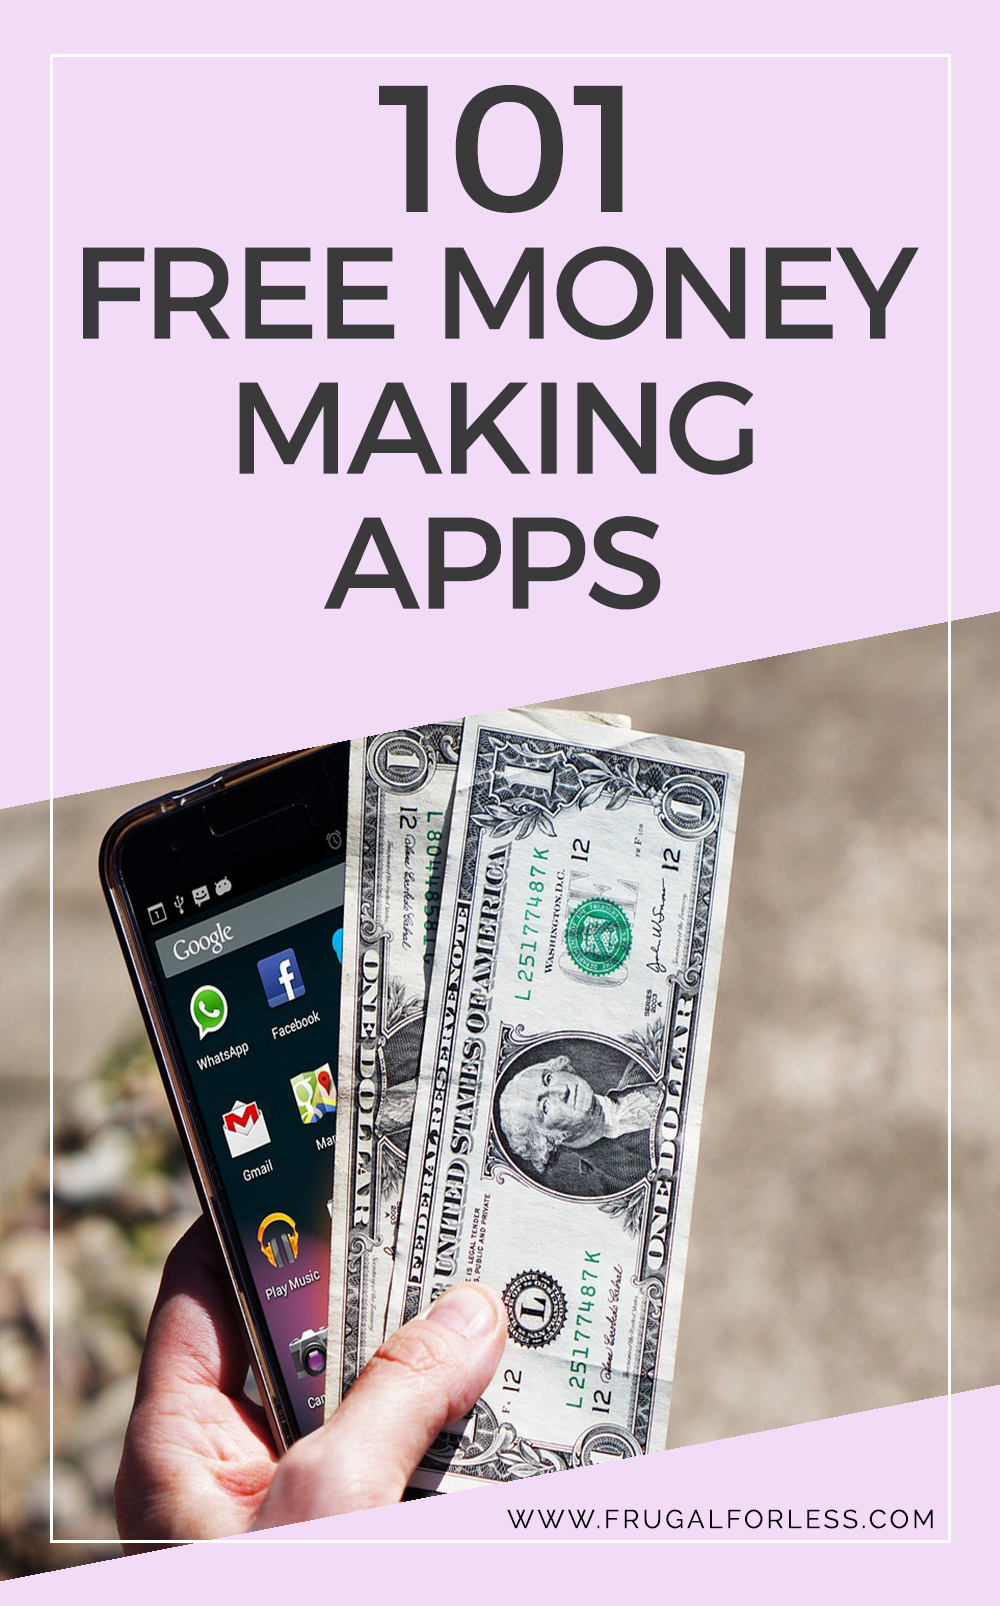 101 Free Money Making Apps To Earn Cash Today (Updated